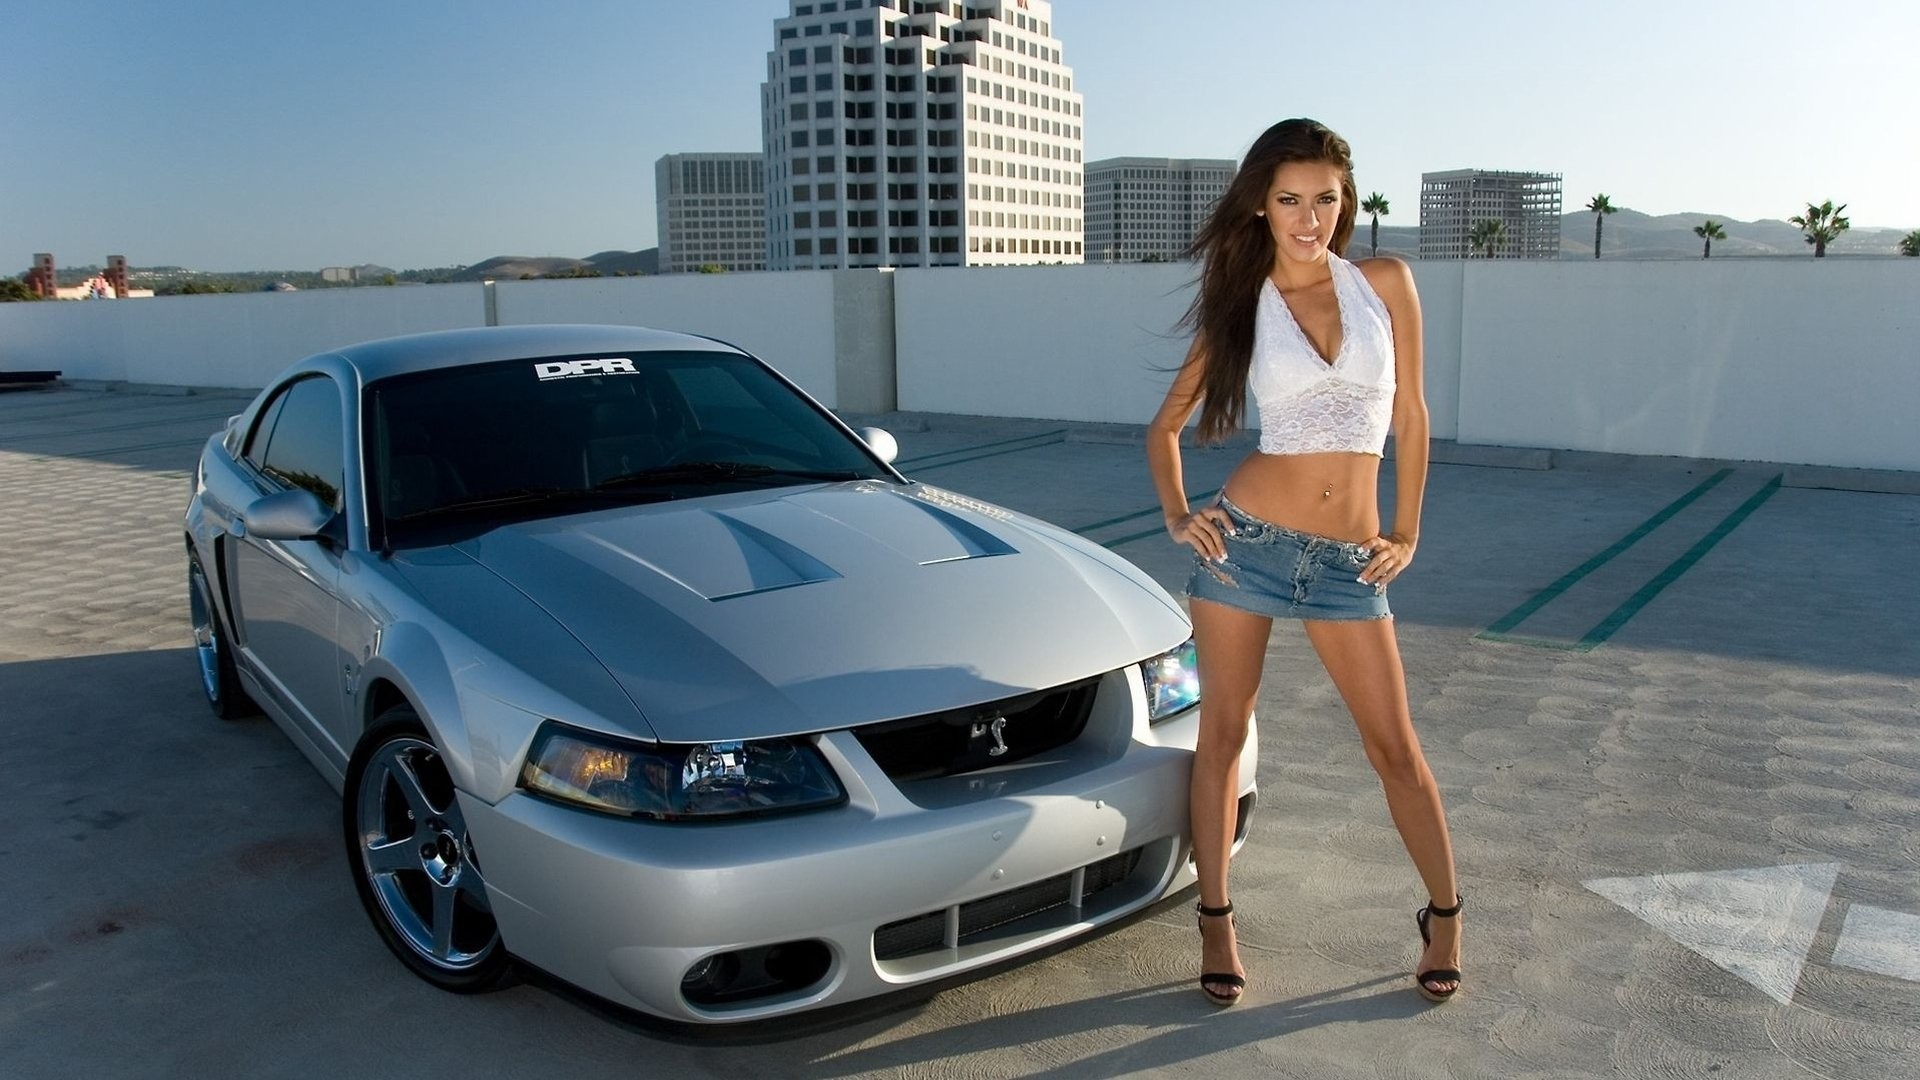 HD Wallpaper | Background ID:152374. Vehicles Ford Mustang. 14  Like. Favorite